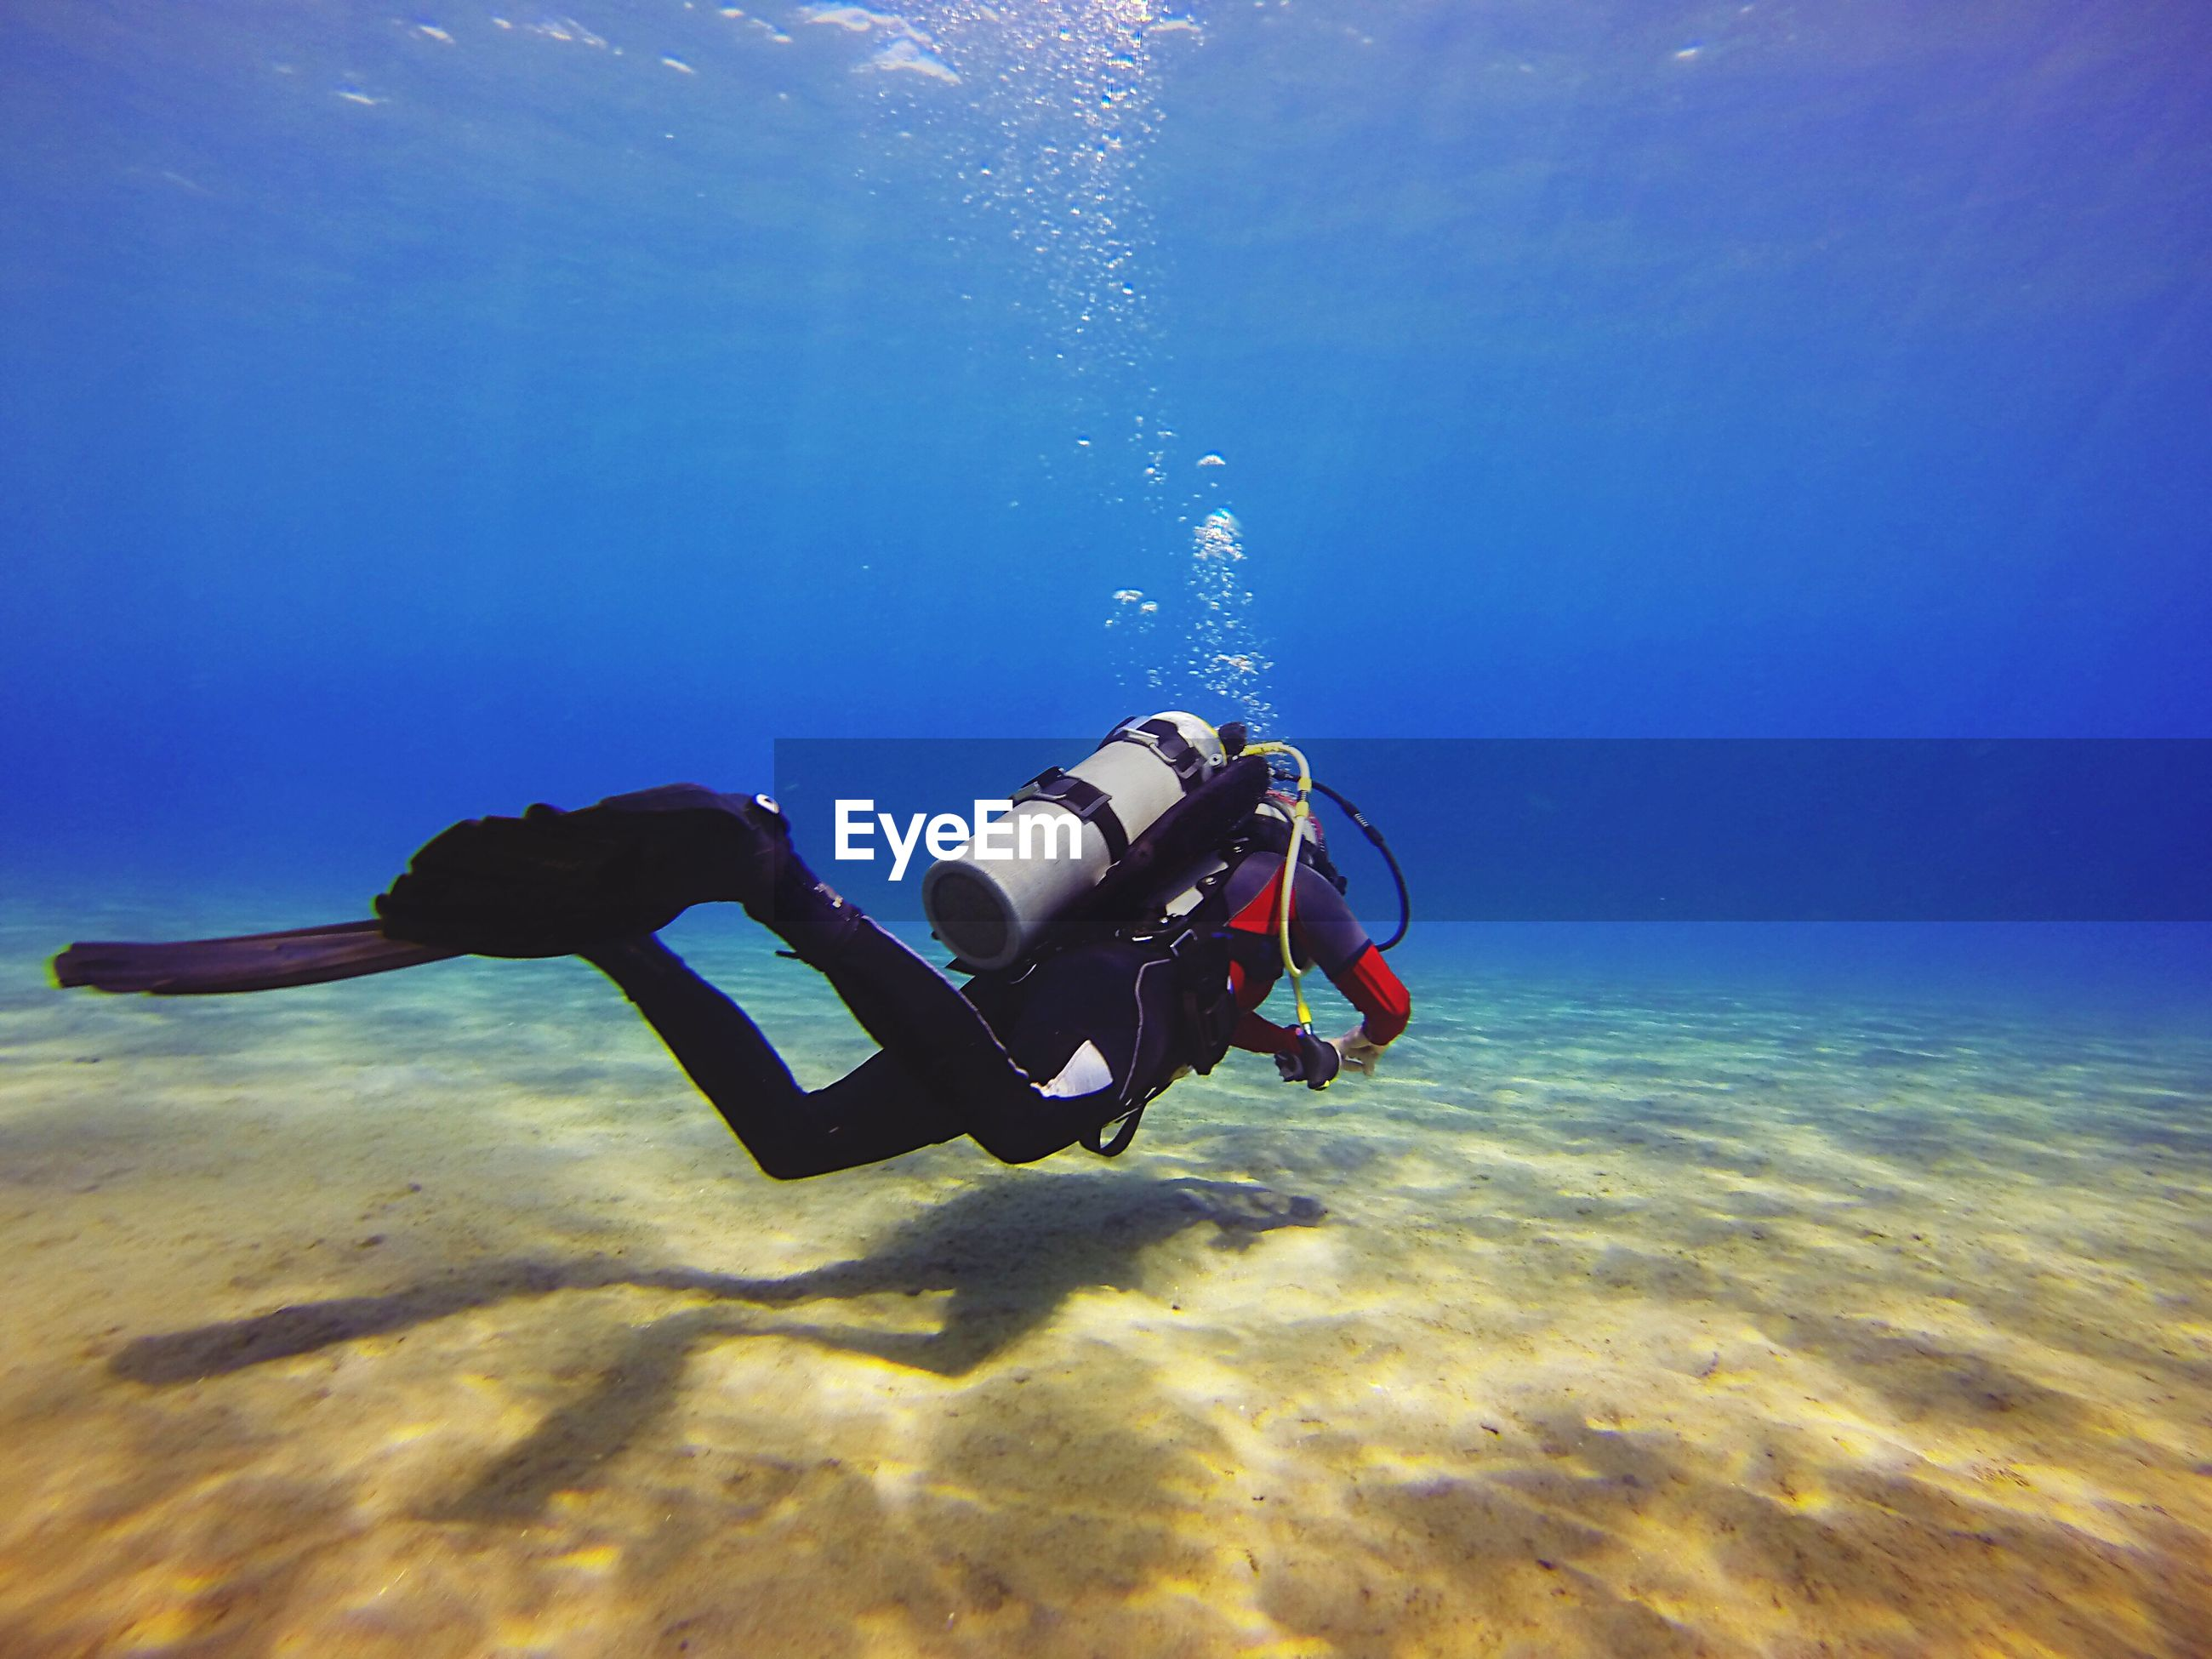 Low angle view of person scuba diving in sea